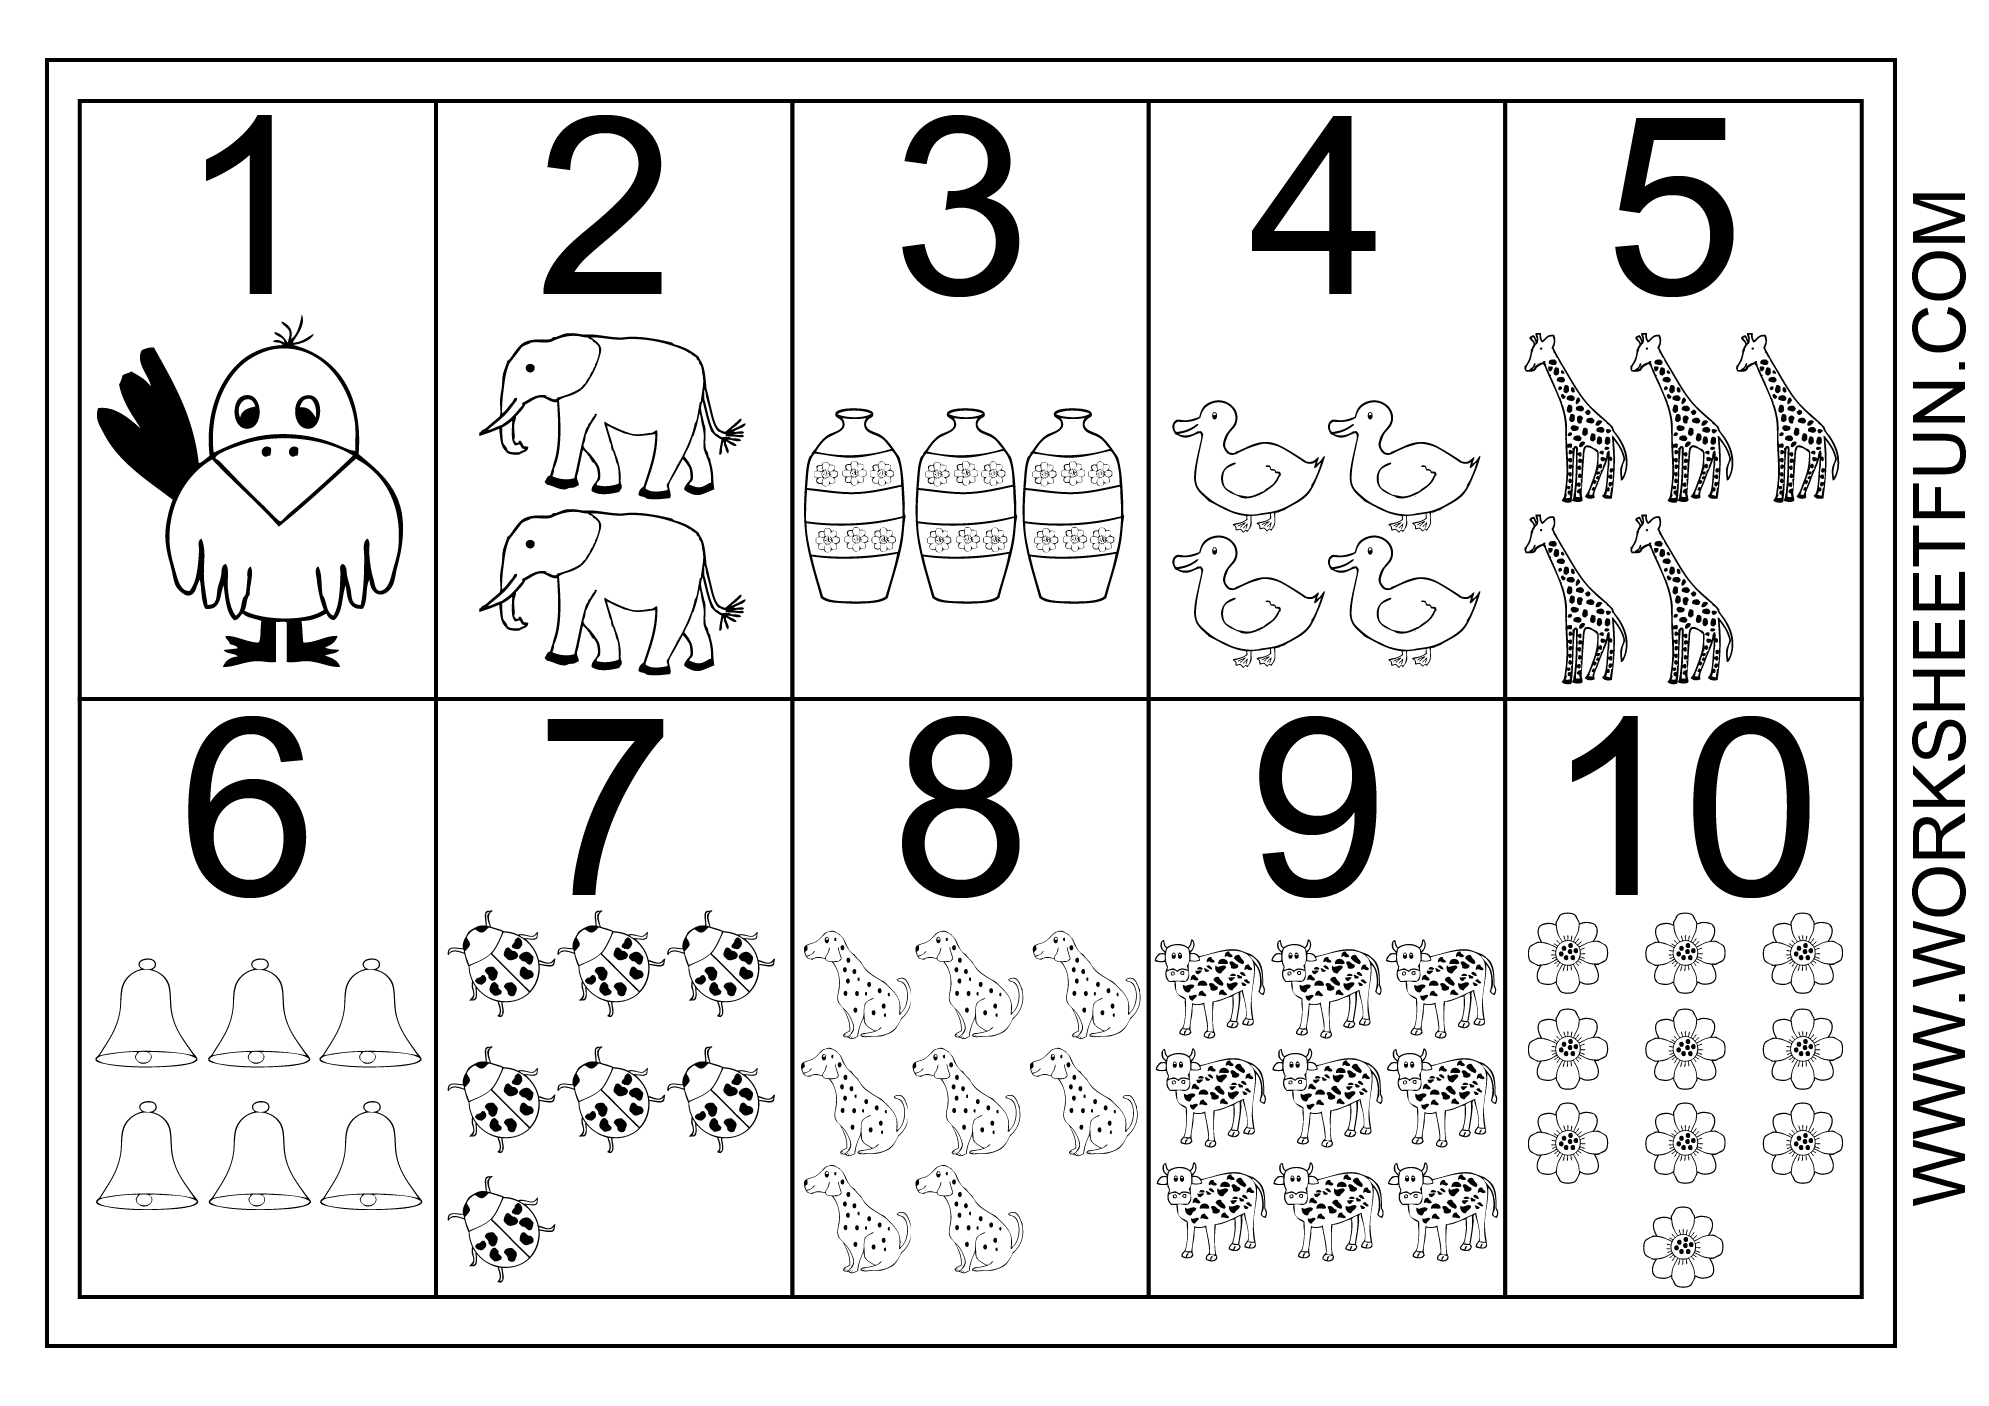 Worksheets Number Worksheets free printable preschool worksheets numbers intrepidpath 6 best images of number 1 free